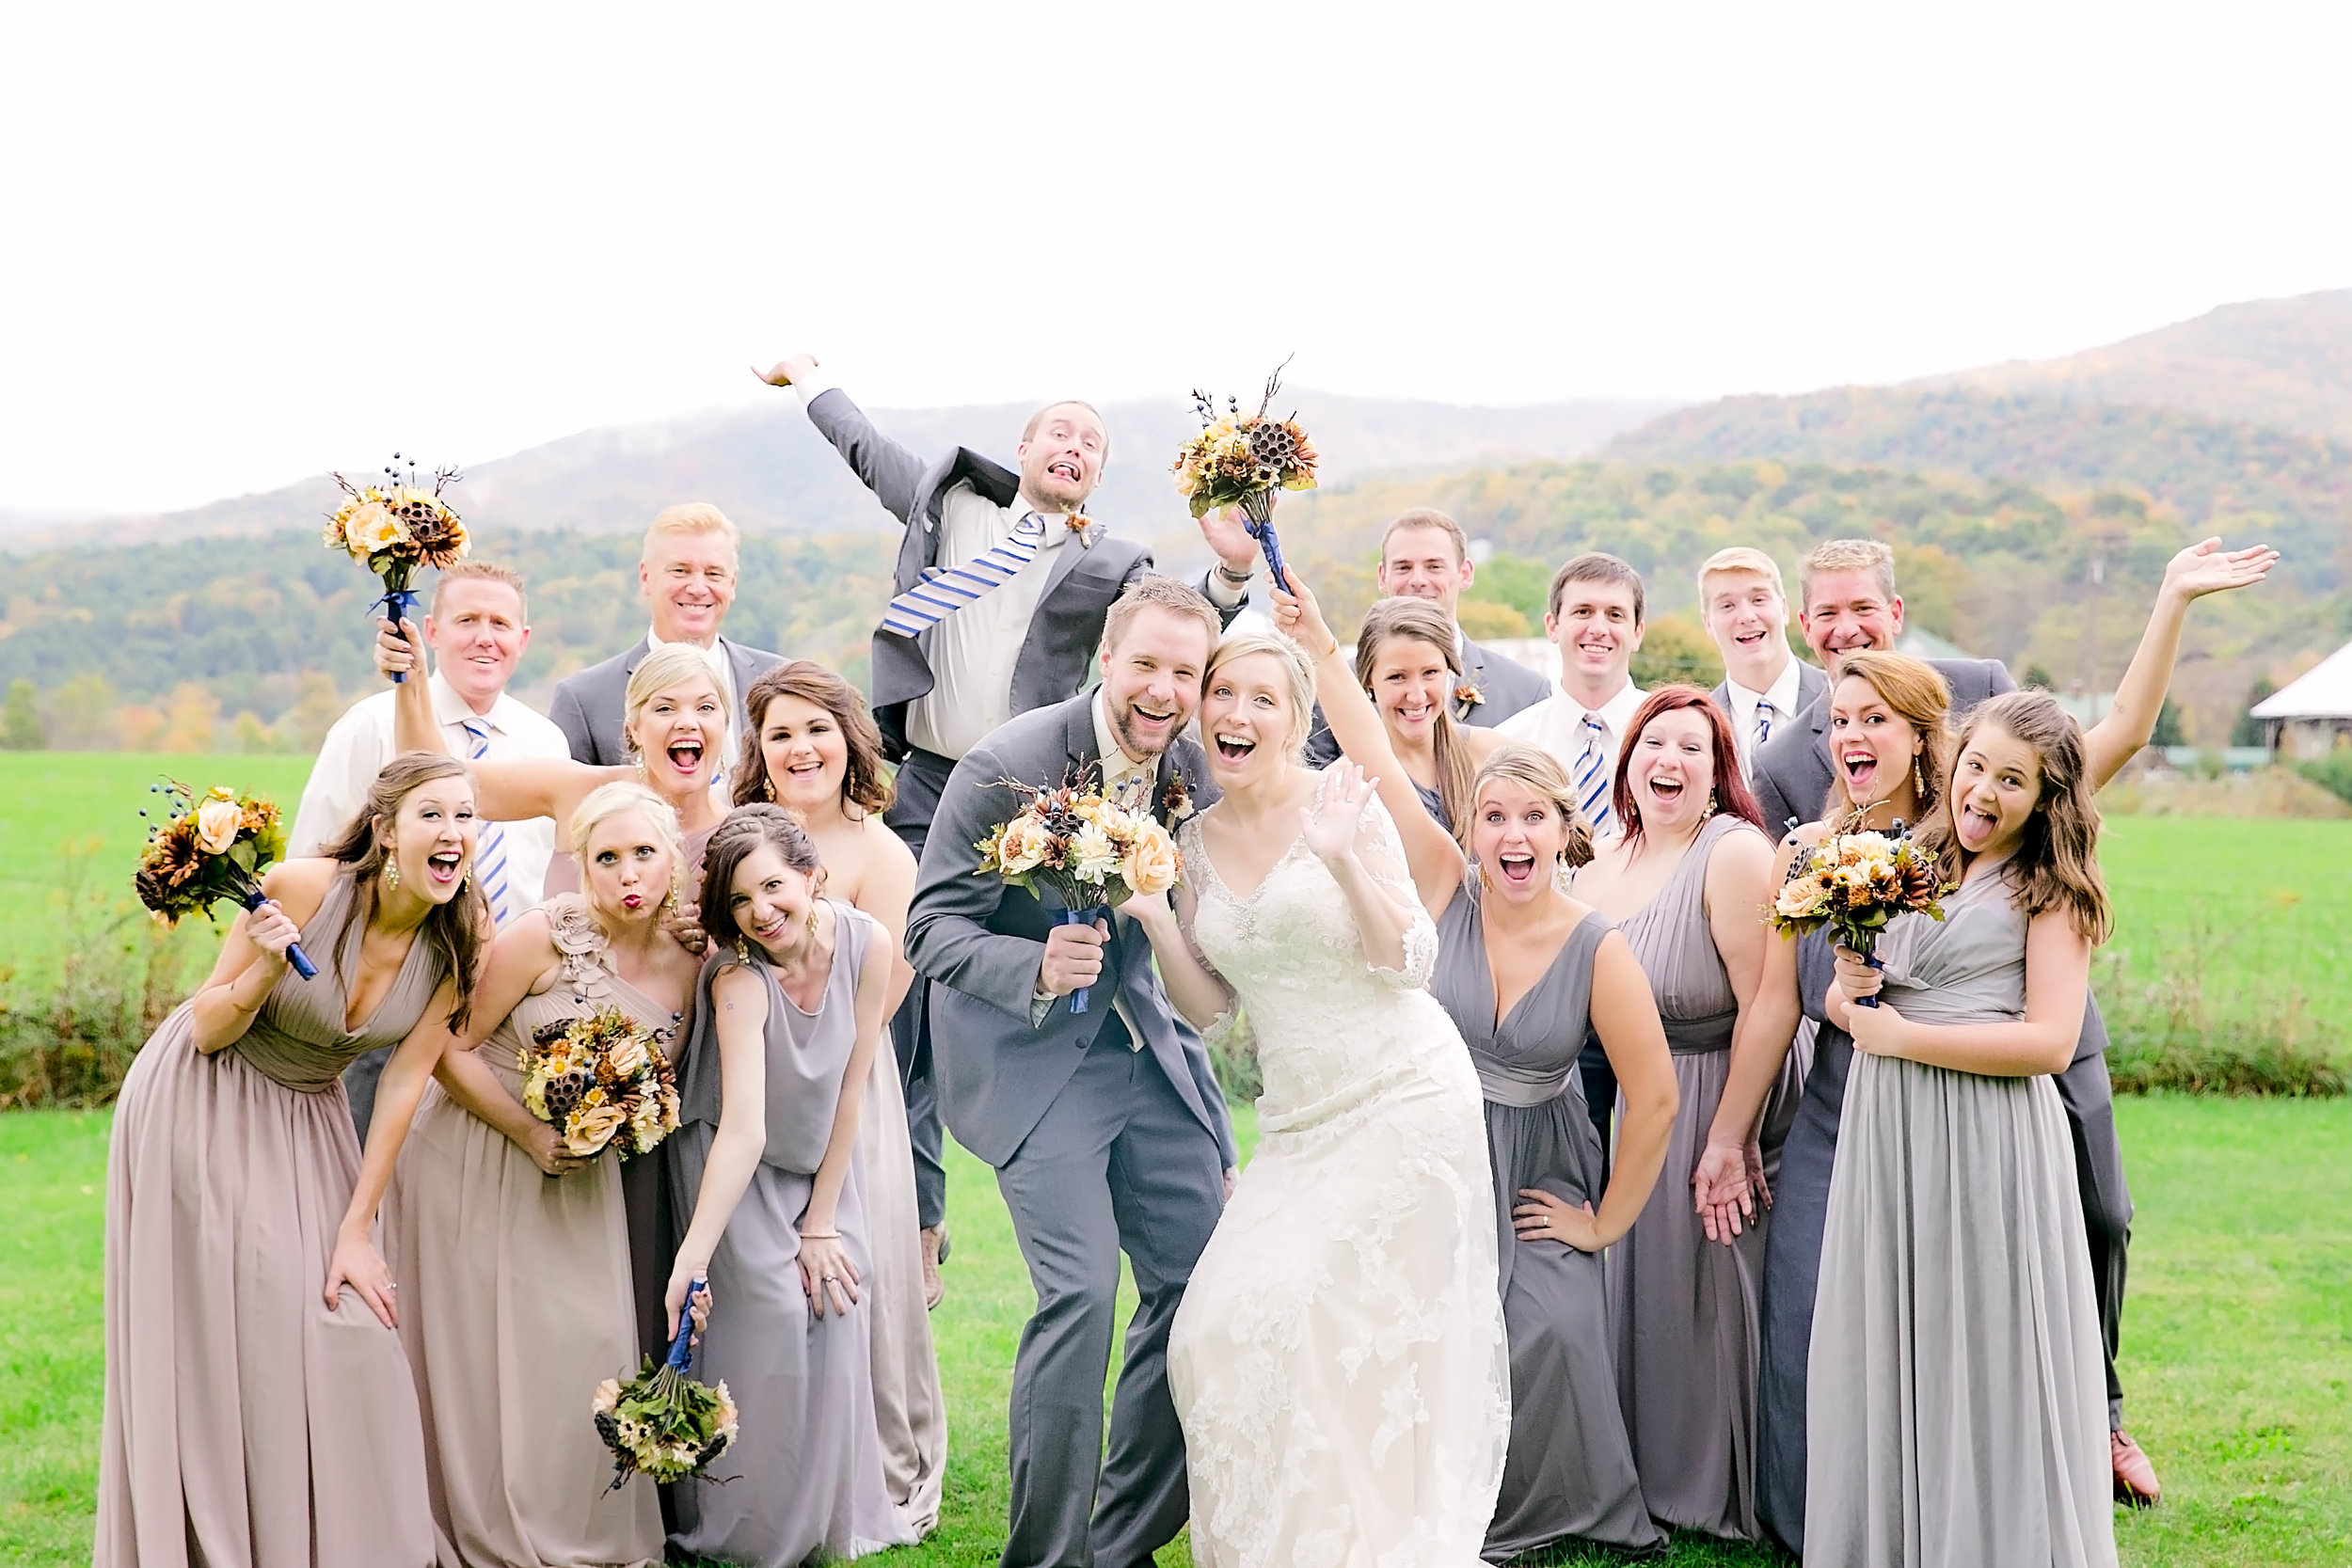 Wedding party, bridesmaids and groomsmen